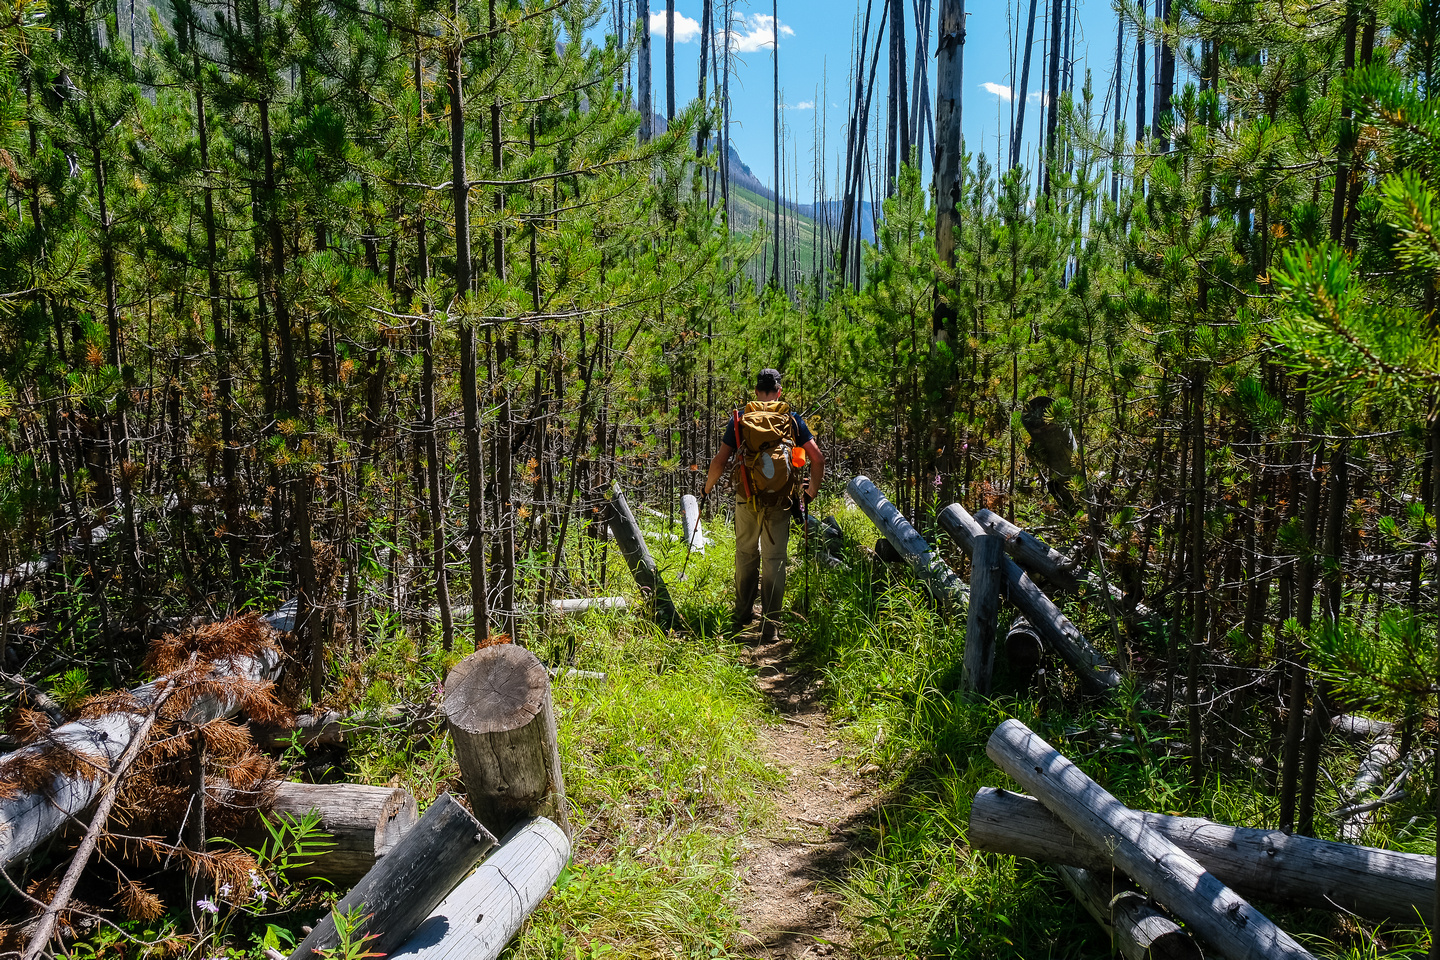 The Middle Fork Trail is maintained and obvious through a very new, tight forest.